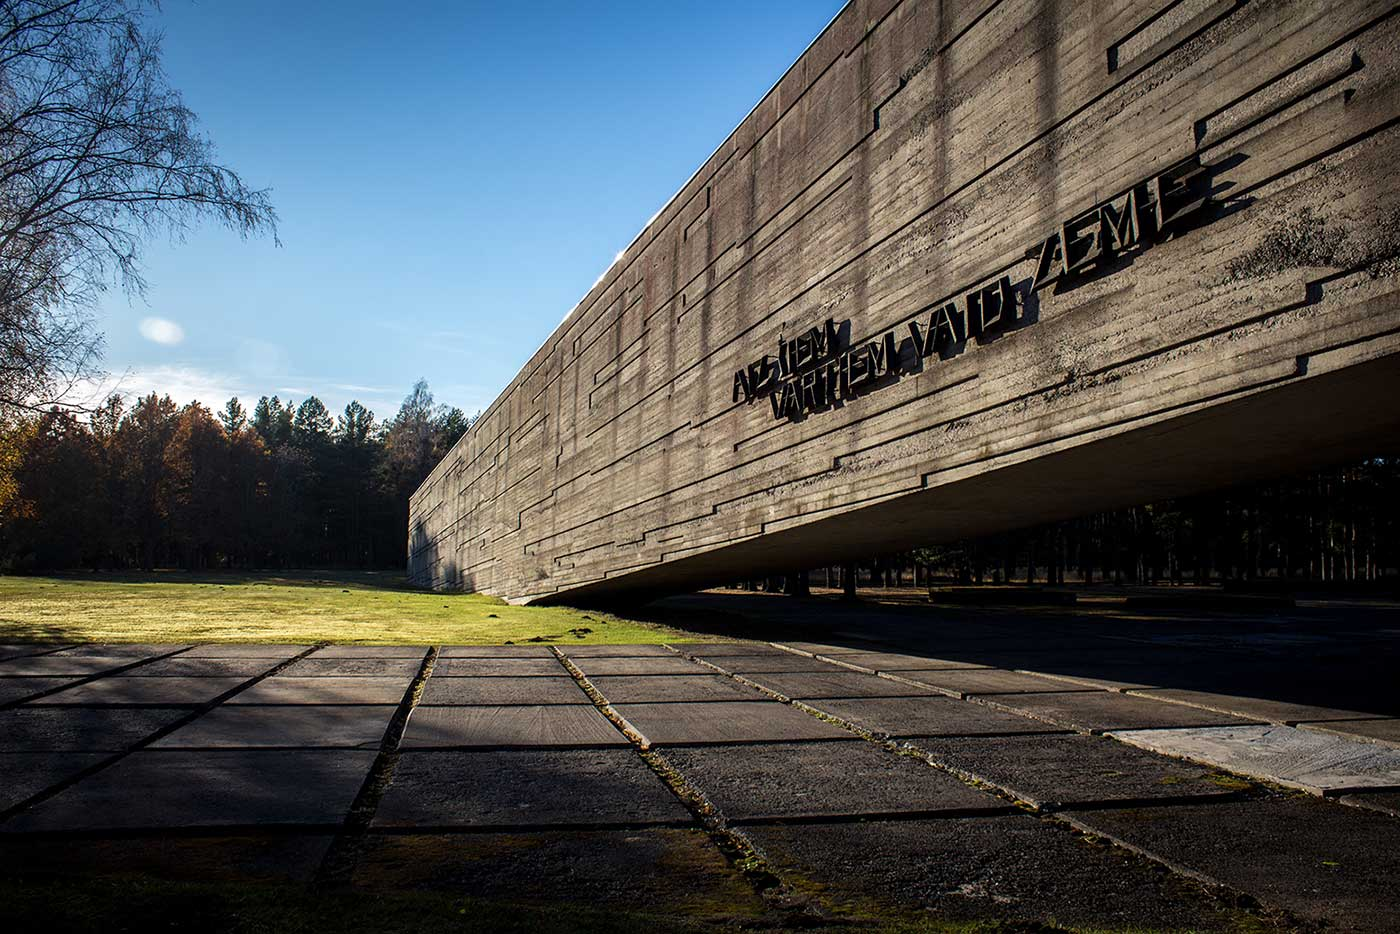 """Text across the wall of the gallery reads: """"Beyond these gates the land groans."""" Salaspils Memorial, Latvia."""